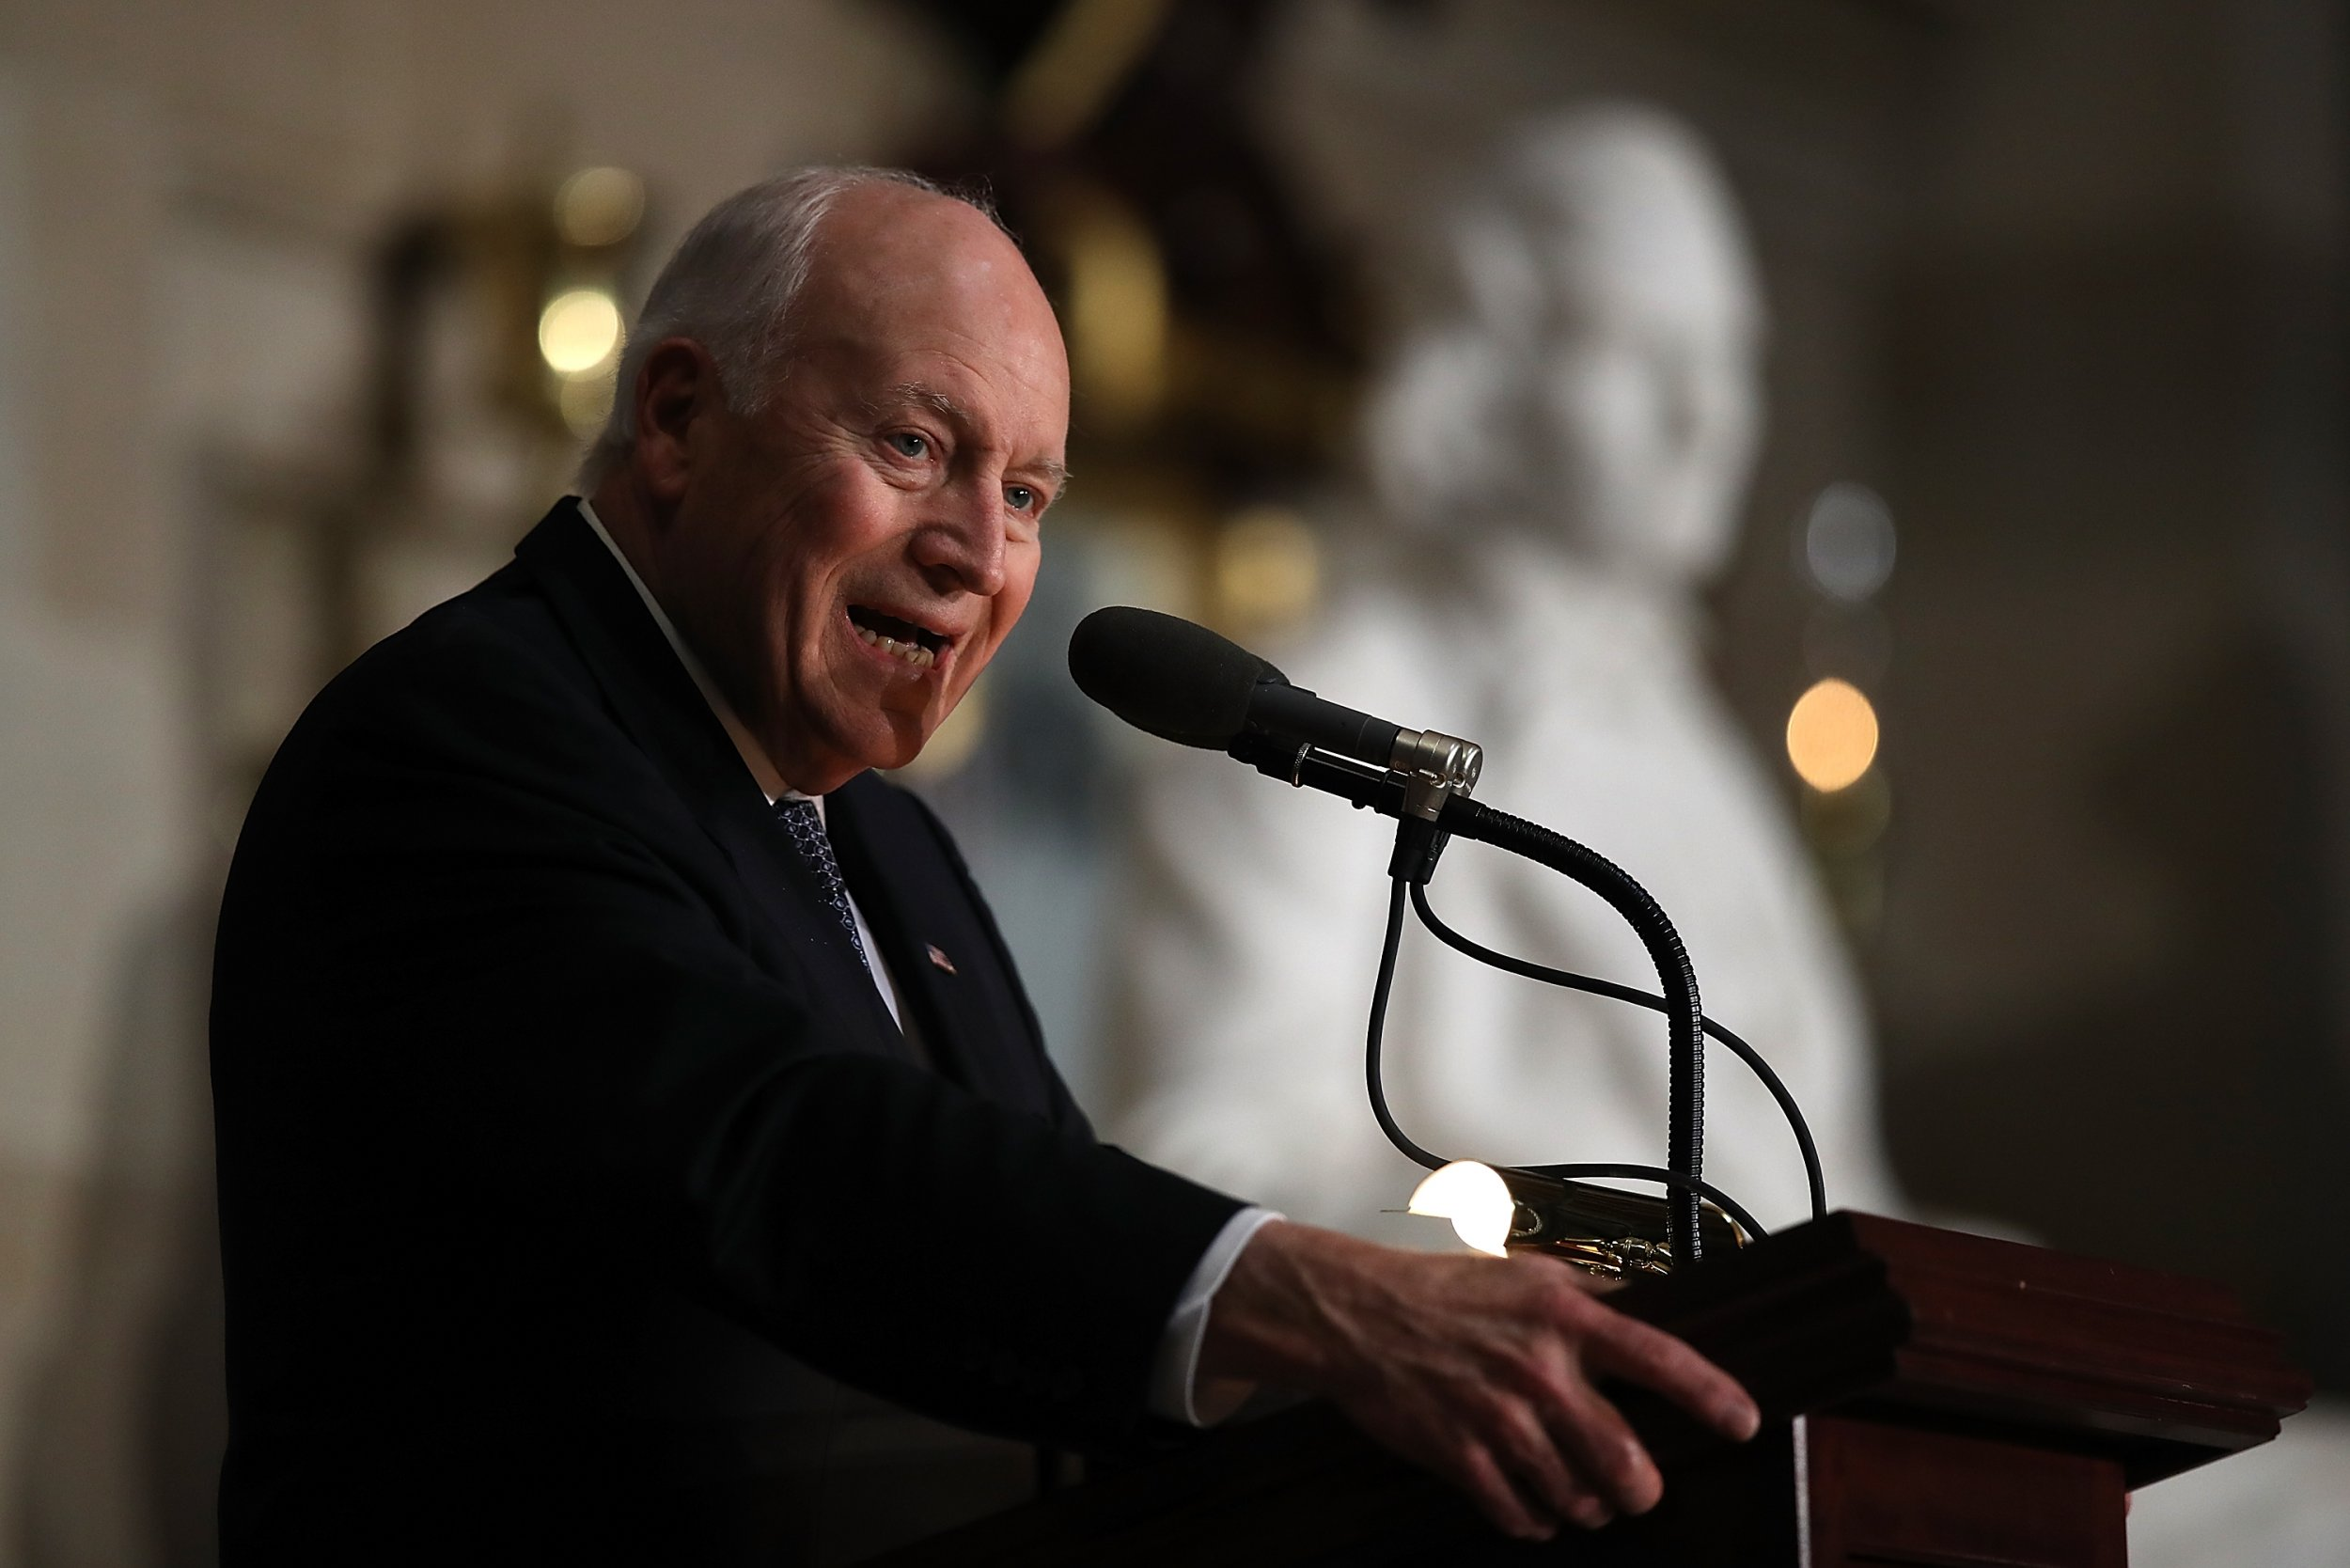 Dick Cheney says U.S. should restart torture program because he doesn't consider waterboarding torture